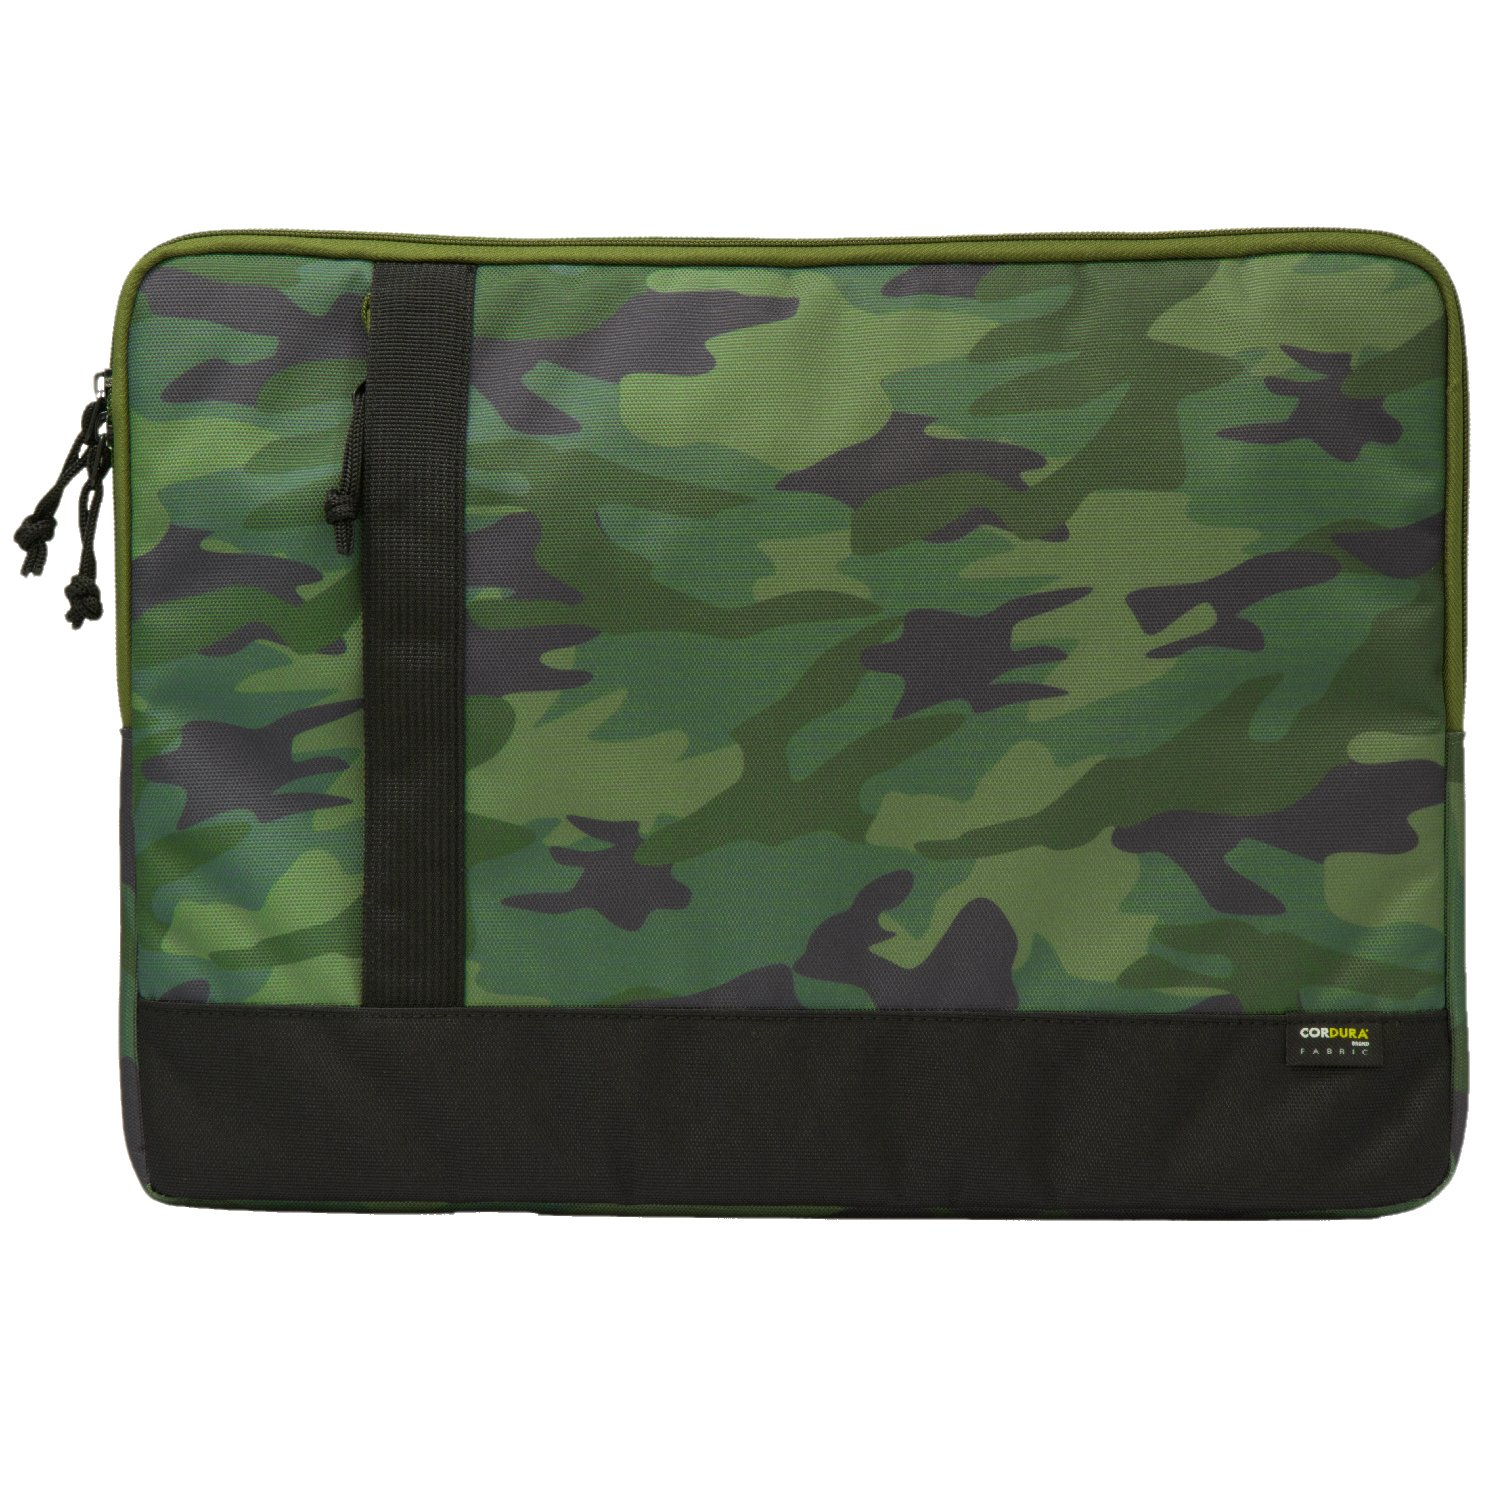 ELECOM Laptop Computer Sleeve Case Support Up to 15.6inch Laptop, Water Repellent, CODURA 1000 Fabric, High Durability, Front Pocket/Camo Green/BM-IBCD15T1